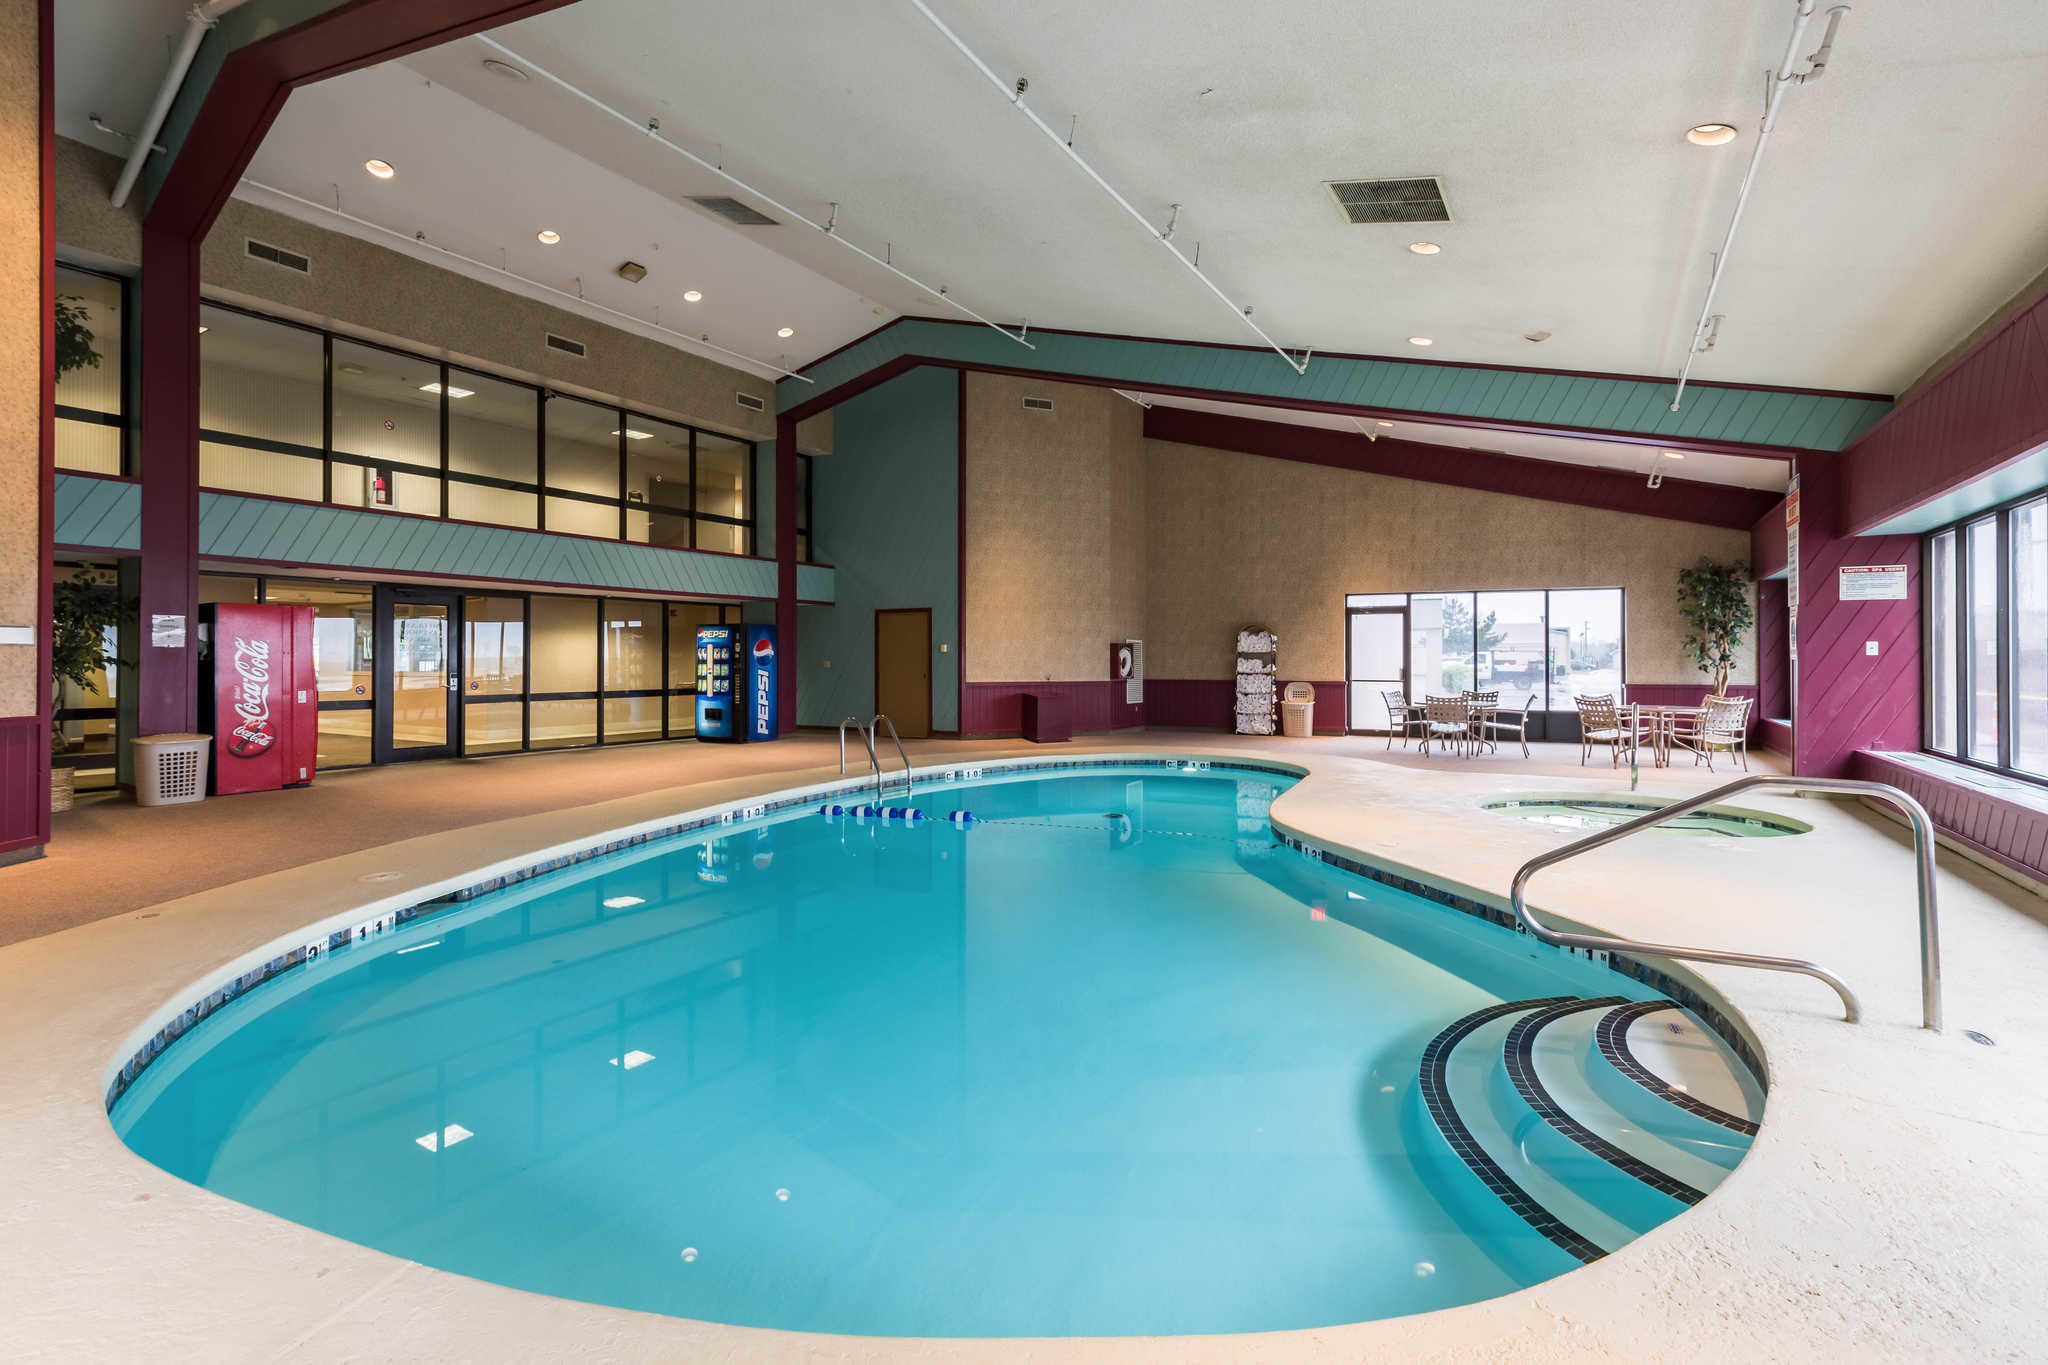 Hotels Near Me With Pool And Smoking Rooms